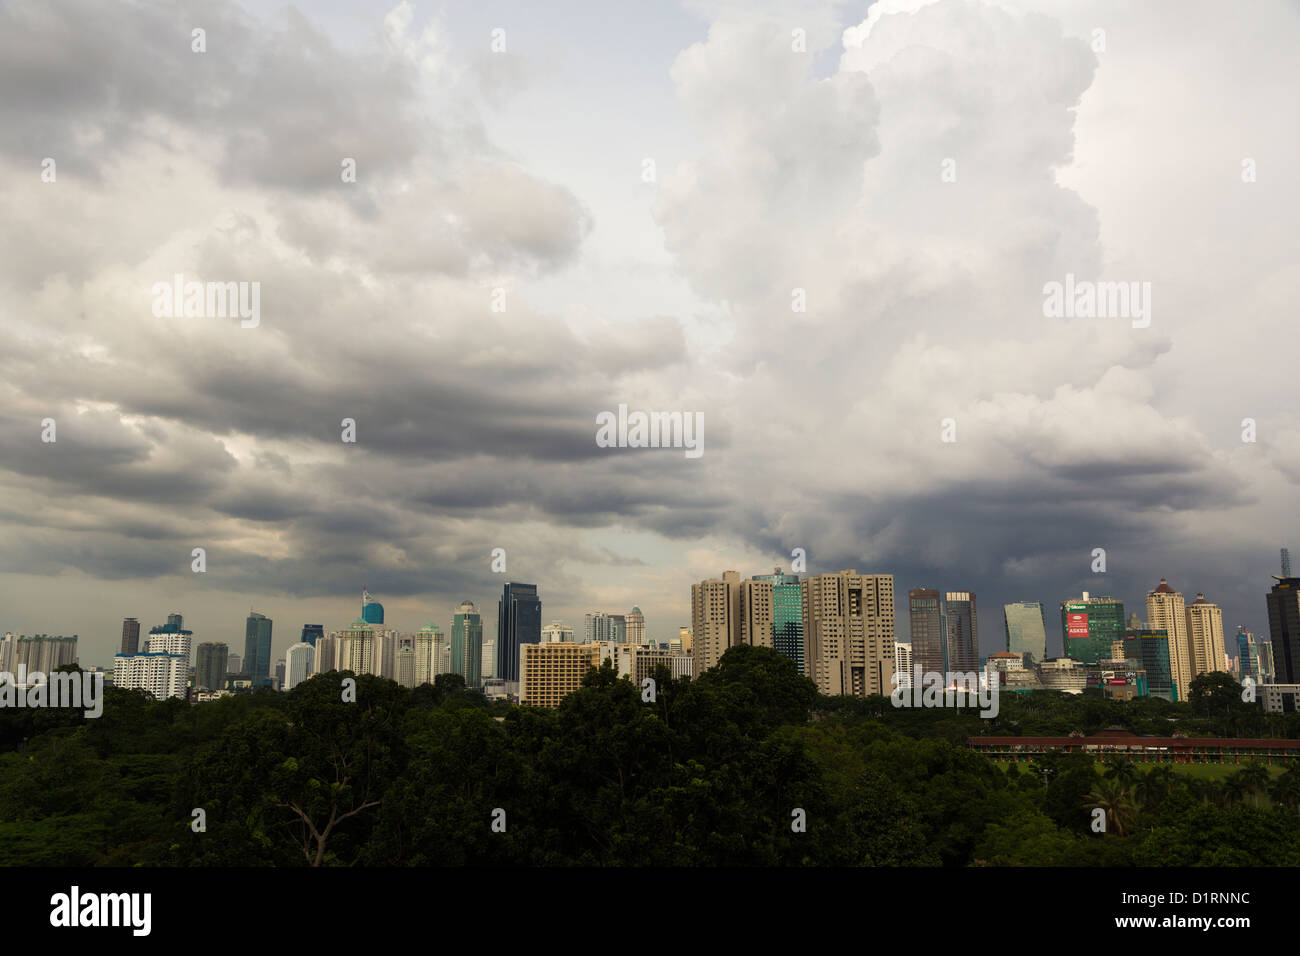 Jakarta central business district skyline with on overcast sky, Indonesia - Stock Image